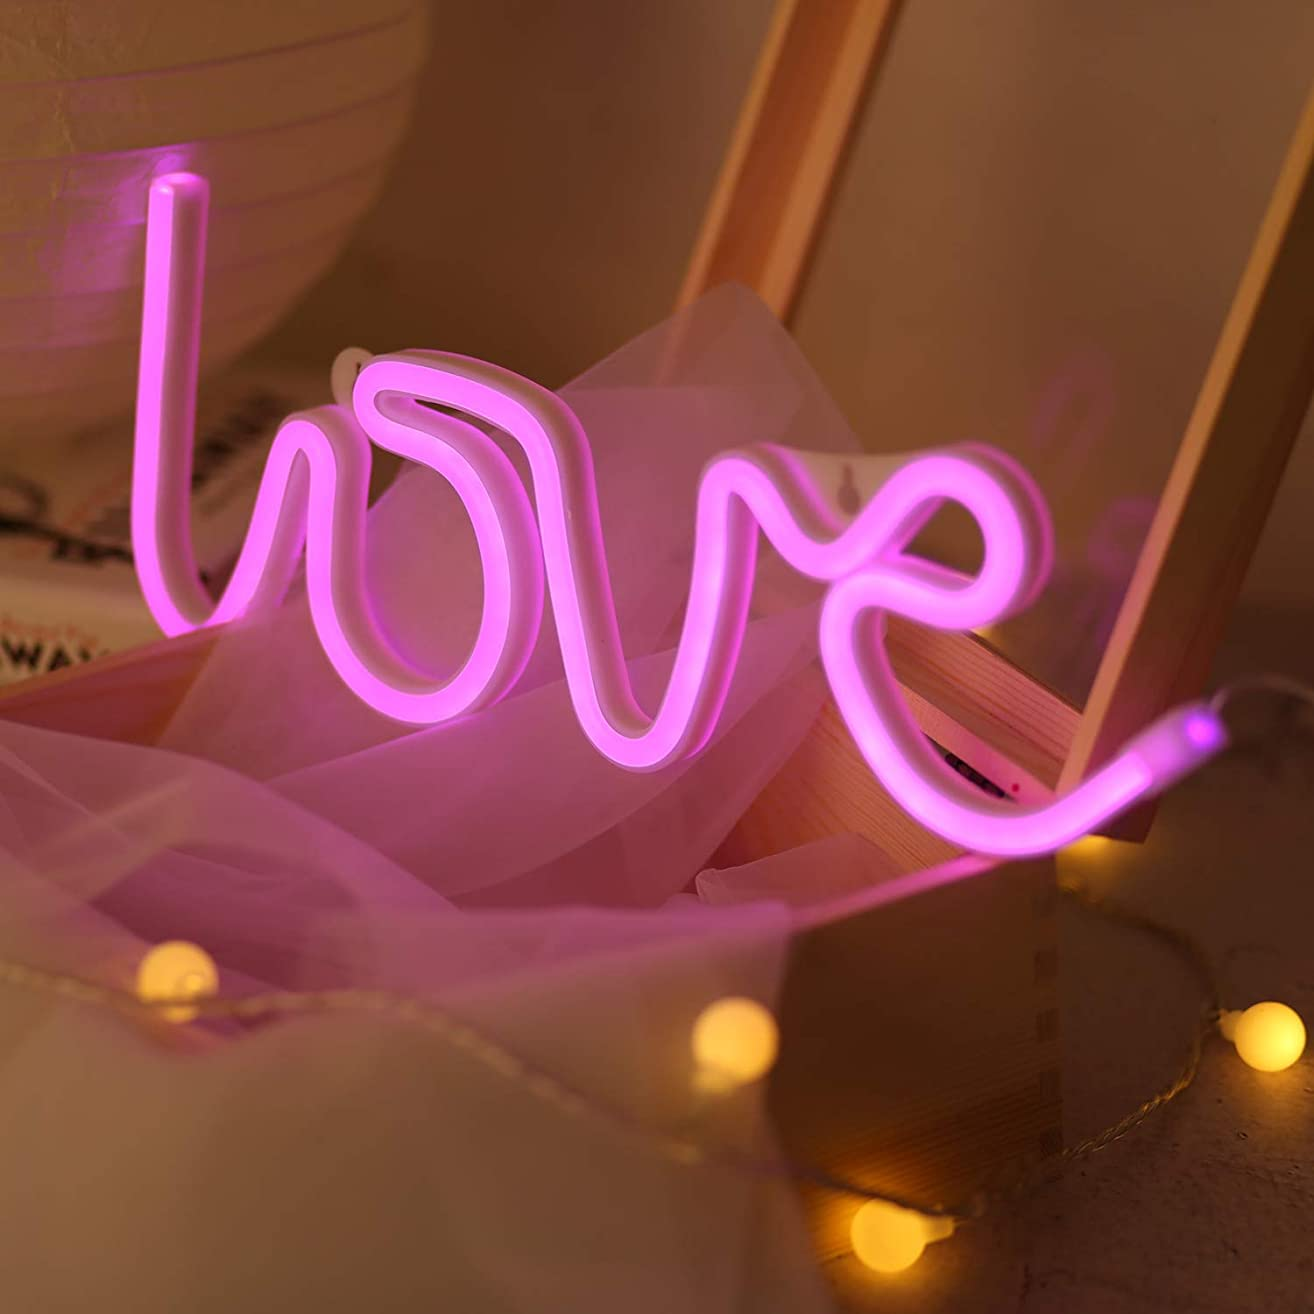 Battife Neon Signs LED Light Wall Night Light, USB or Battery Operated,Love Shaped for Bedroom, Home Accessories, Living Room, Party and Holiday Decorations Gifts (Love)